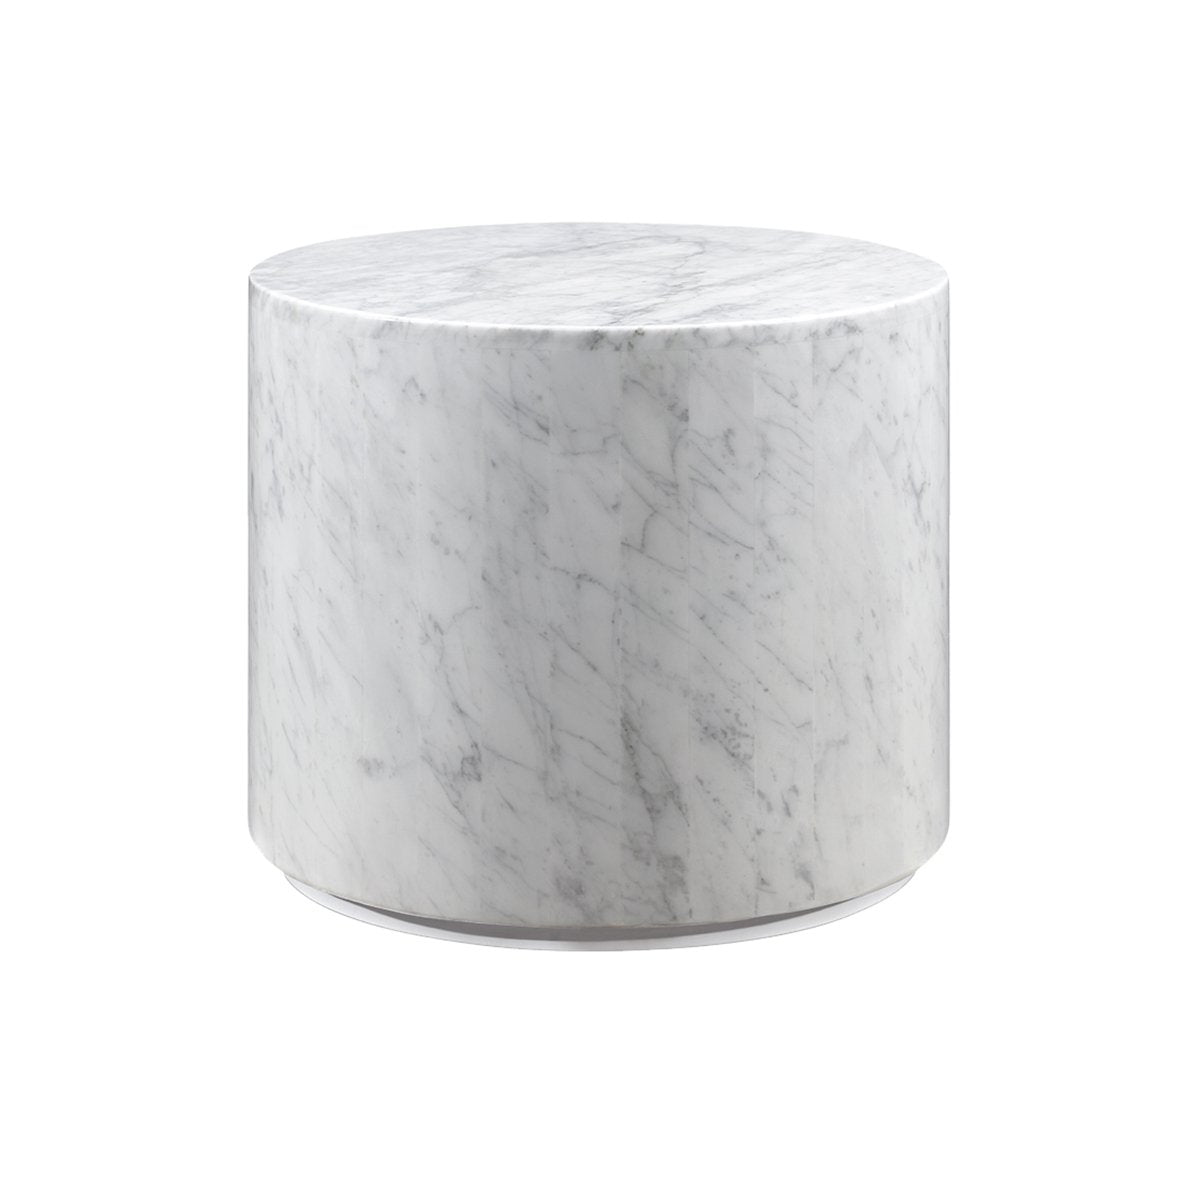 [FVT040WHT] Werbel Side Table